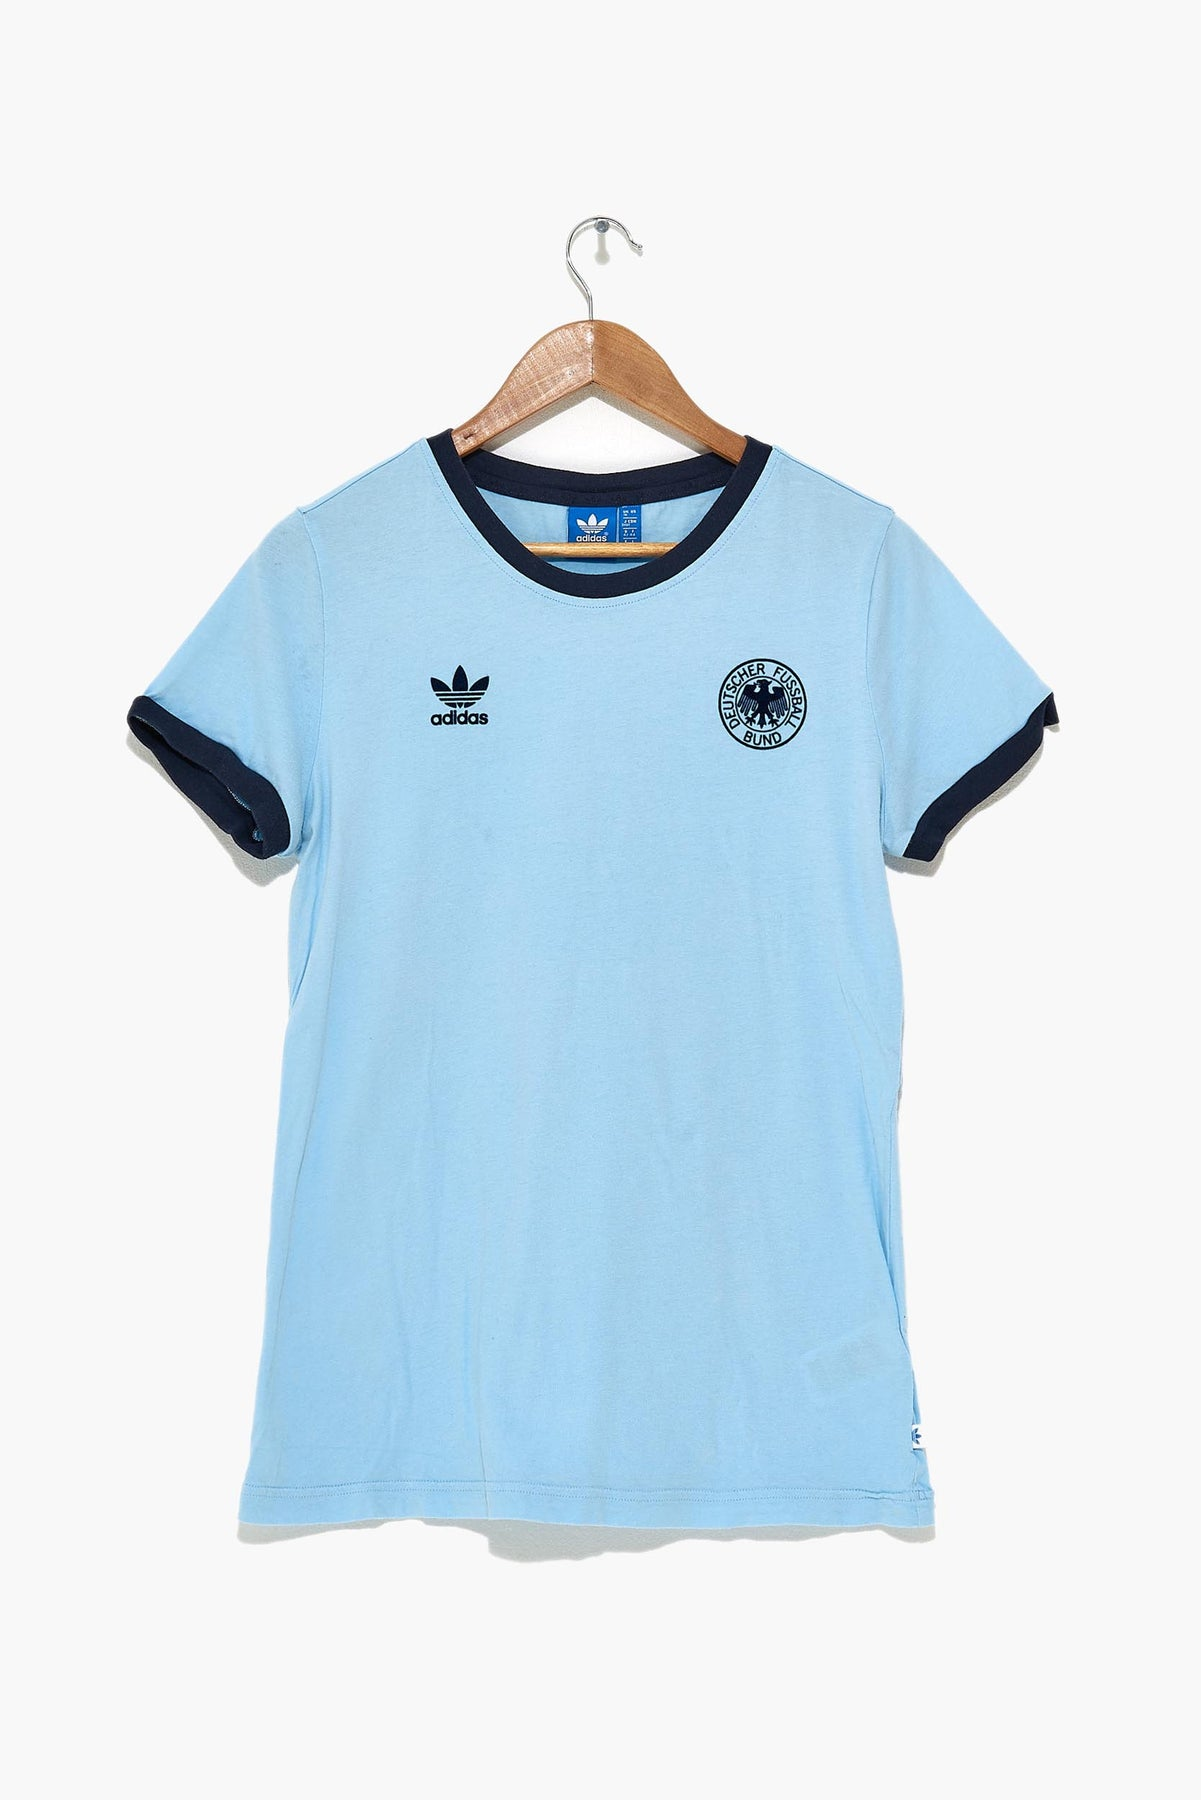 ADIDAS FOOTBALL T Shirt XL – Burggasse24